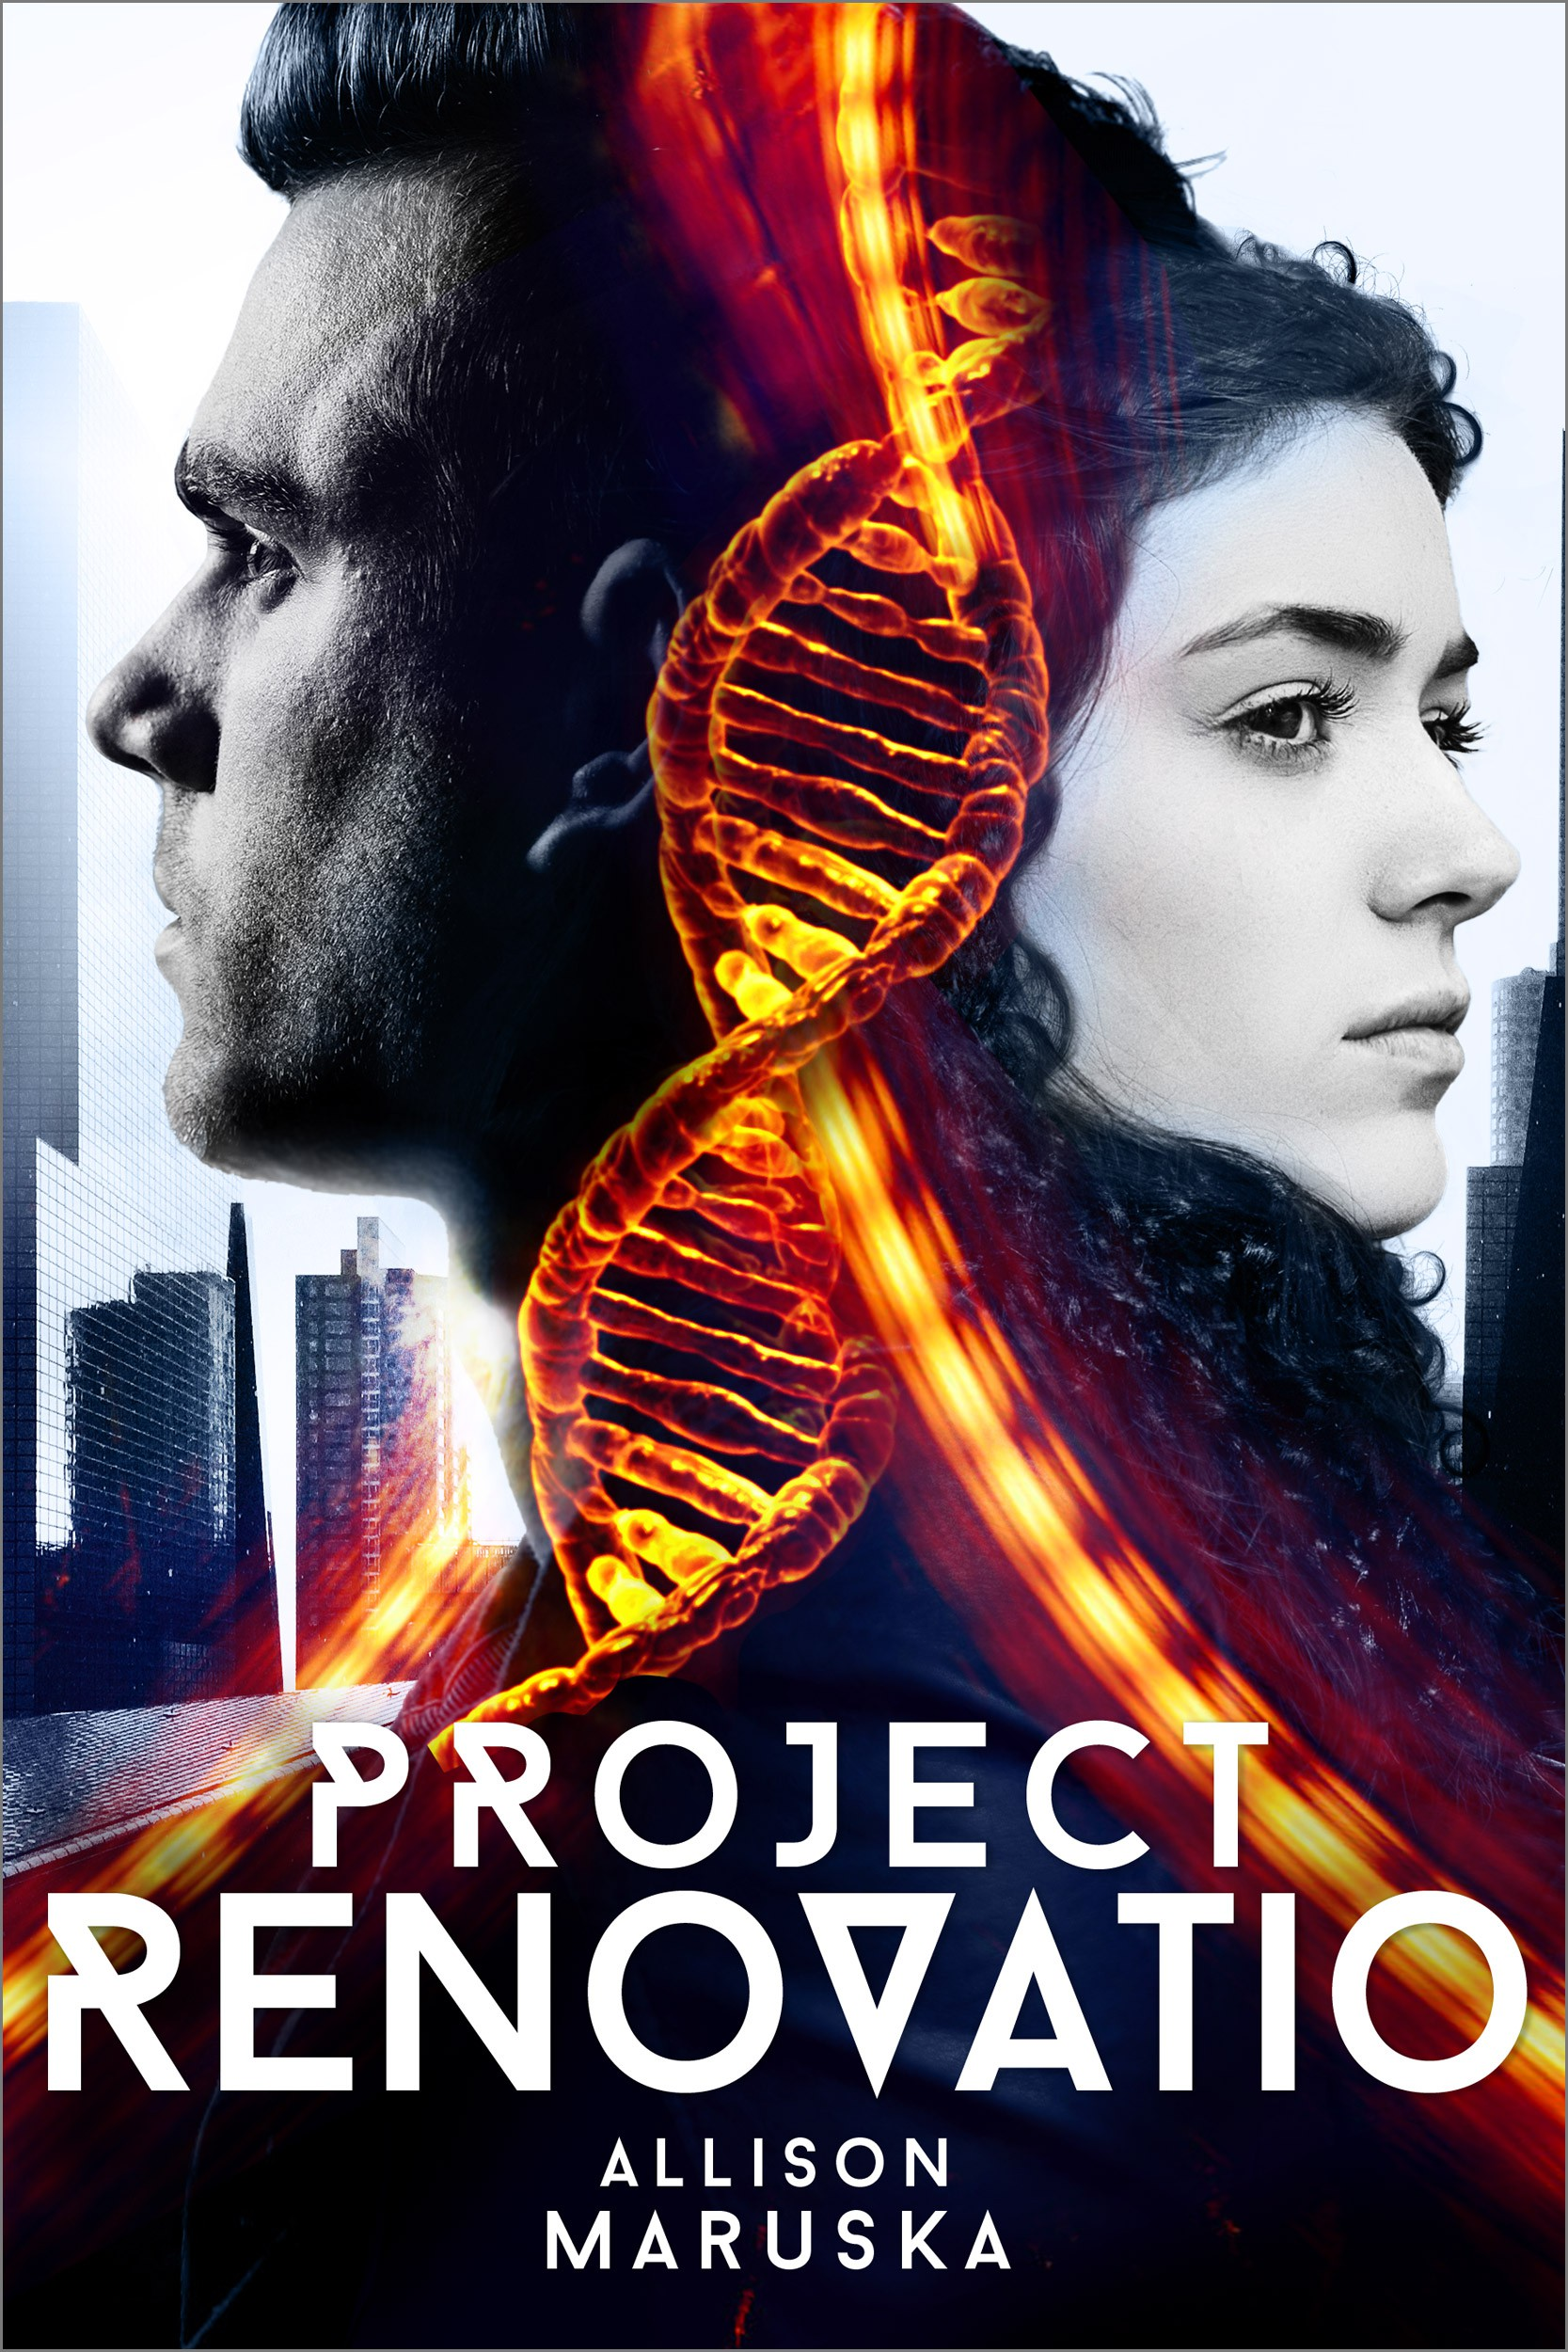 Cover for a Young Adult sci-fi/mystery featuring genetically engineered teens